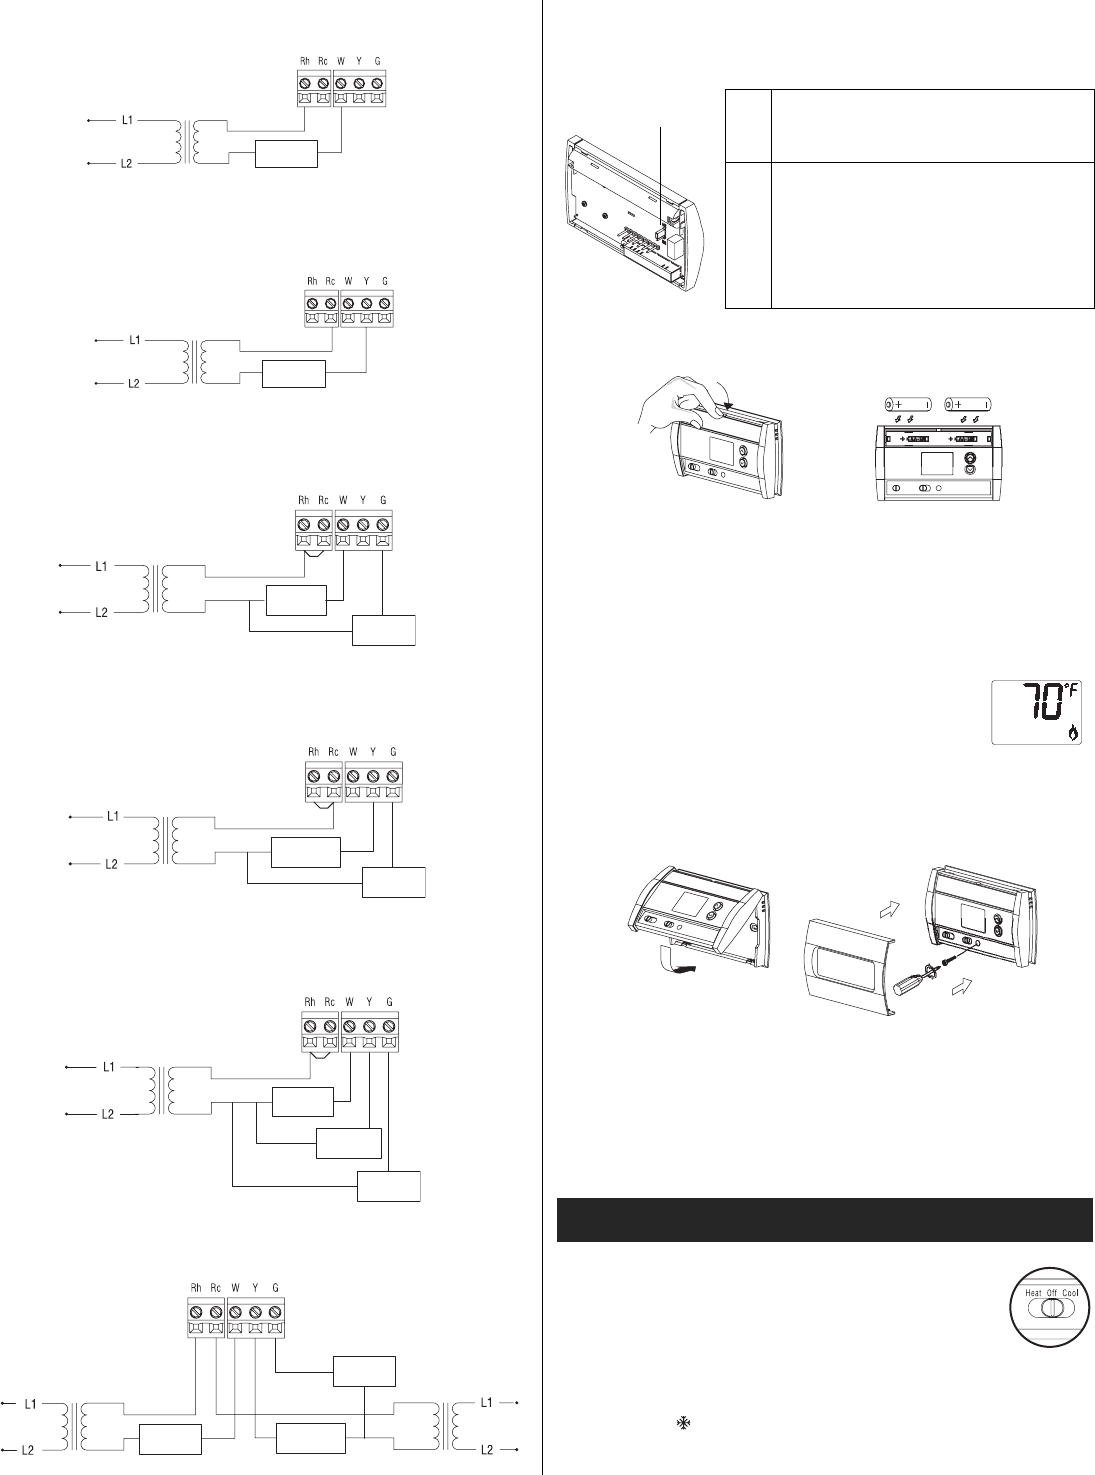 honeywell rth110b wiring diagram today wiring diagram Honeywell Humidistat Wiring-Diagram handleiding honeywell rth110b pagina 3 van 3 english honeywell thermostat diagram honeywell rth110b wiring diagram